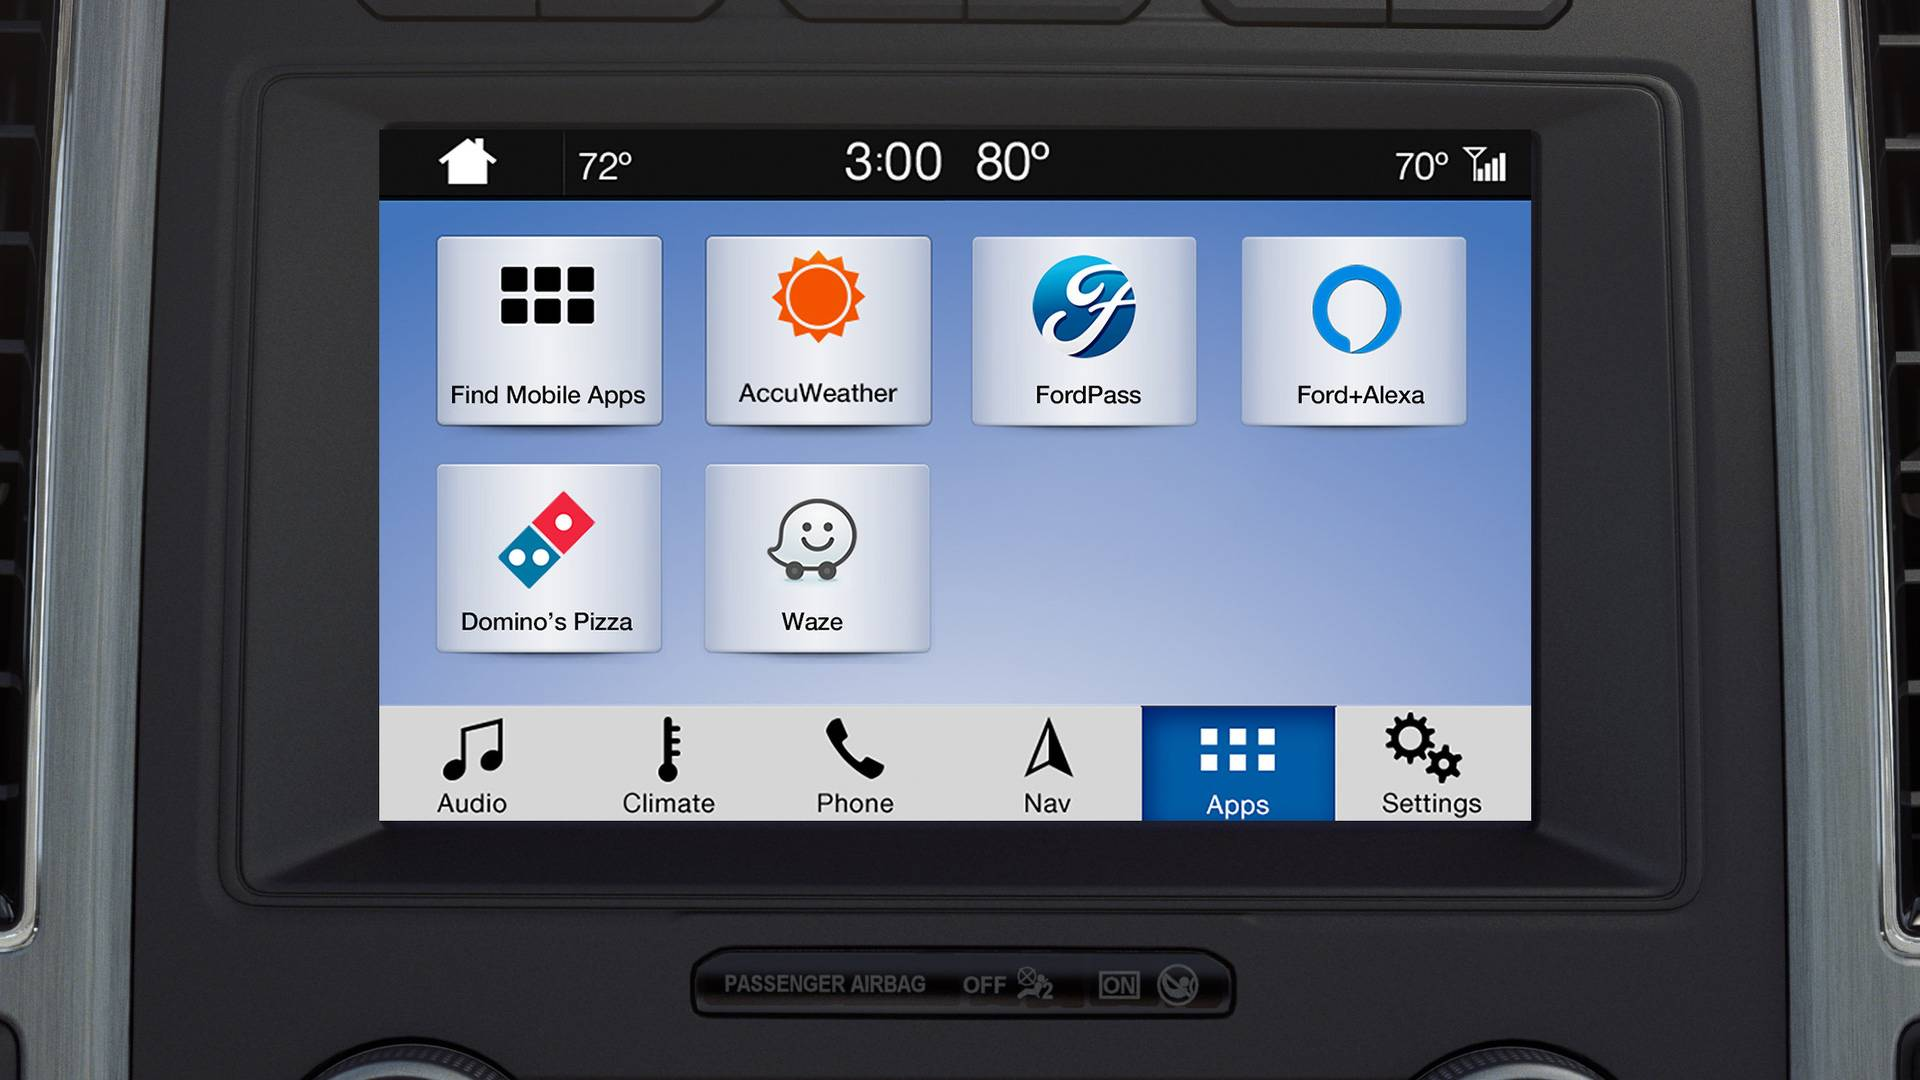 Ford Sync Iphone >> Ford Launches Waze Integration For Iphone Users